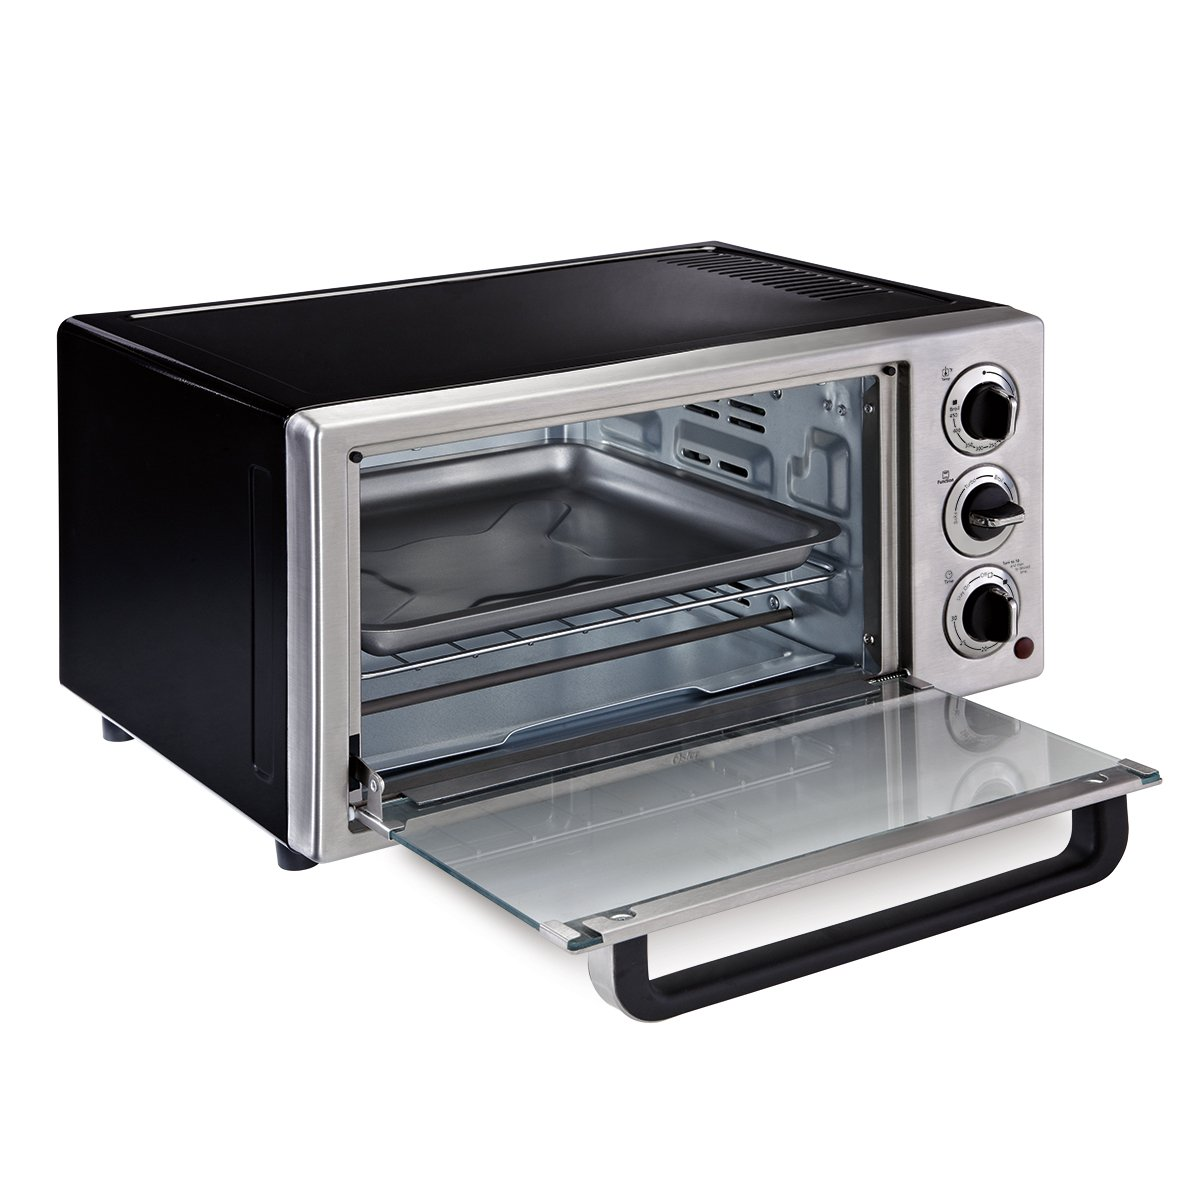 Convection Countertop Oven Stainless Steel : Oster? 6-Slice Convection Countertop Oven, Stainless Steel TSSTTVF815 ...